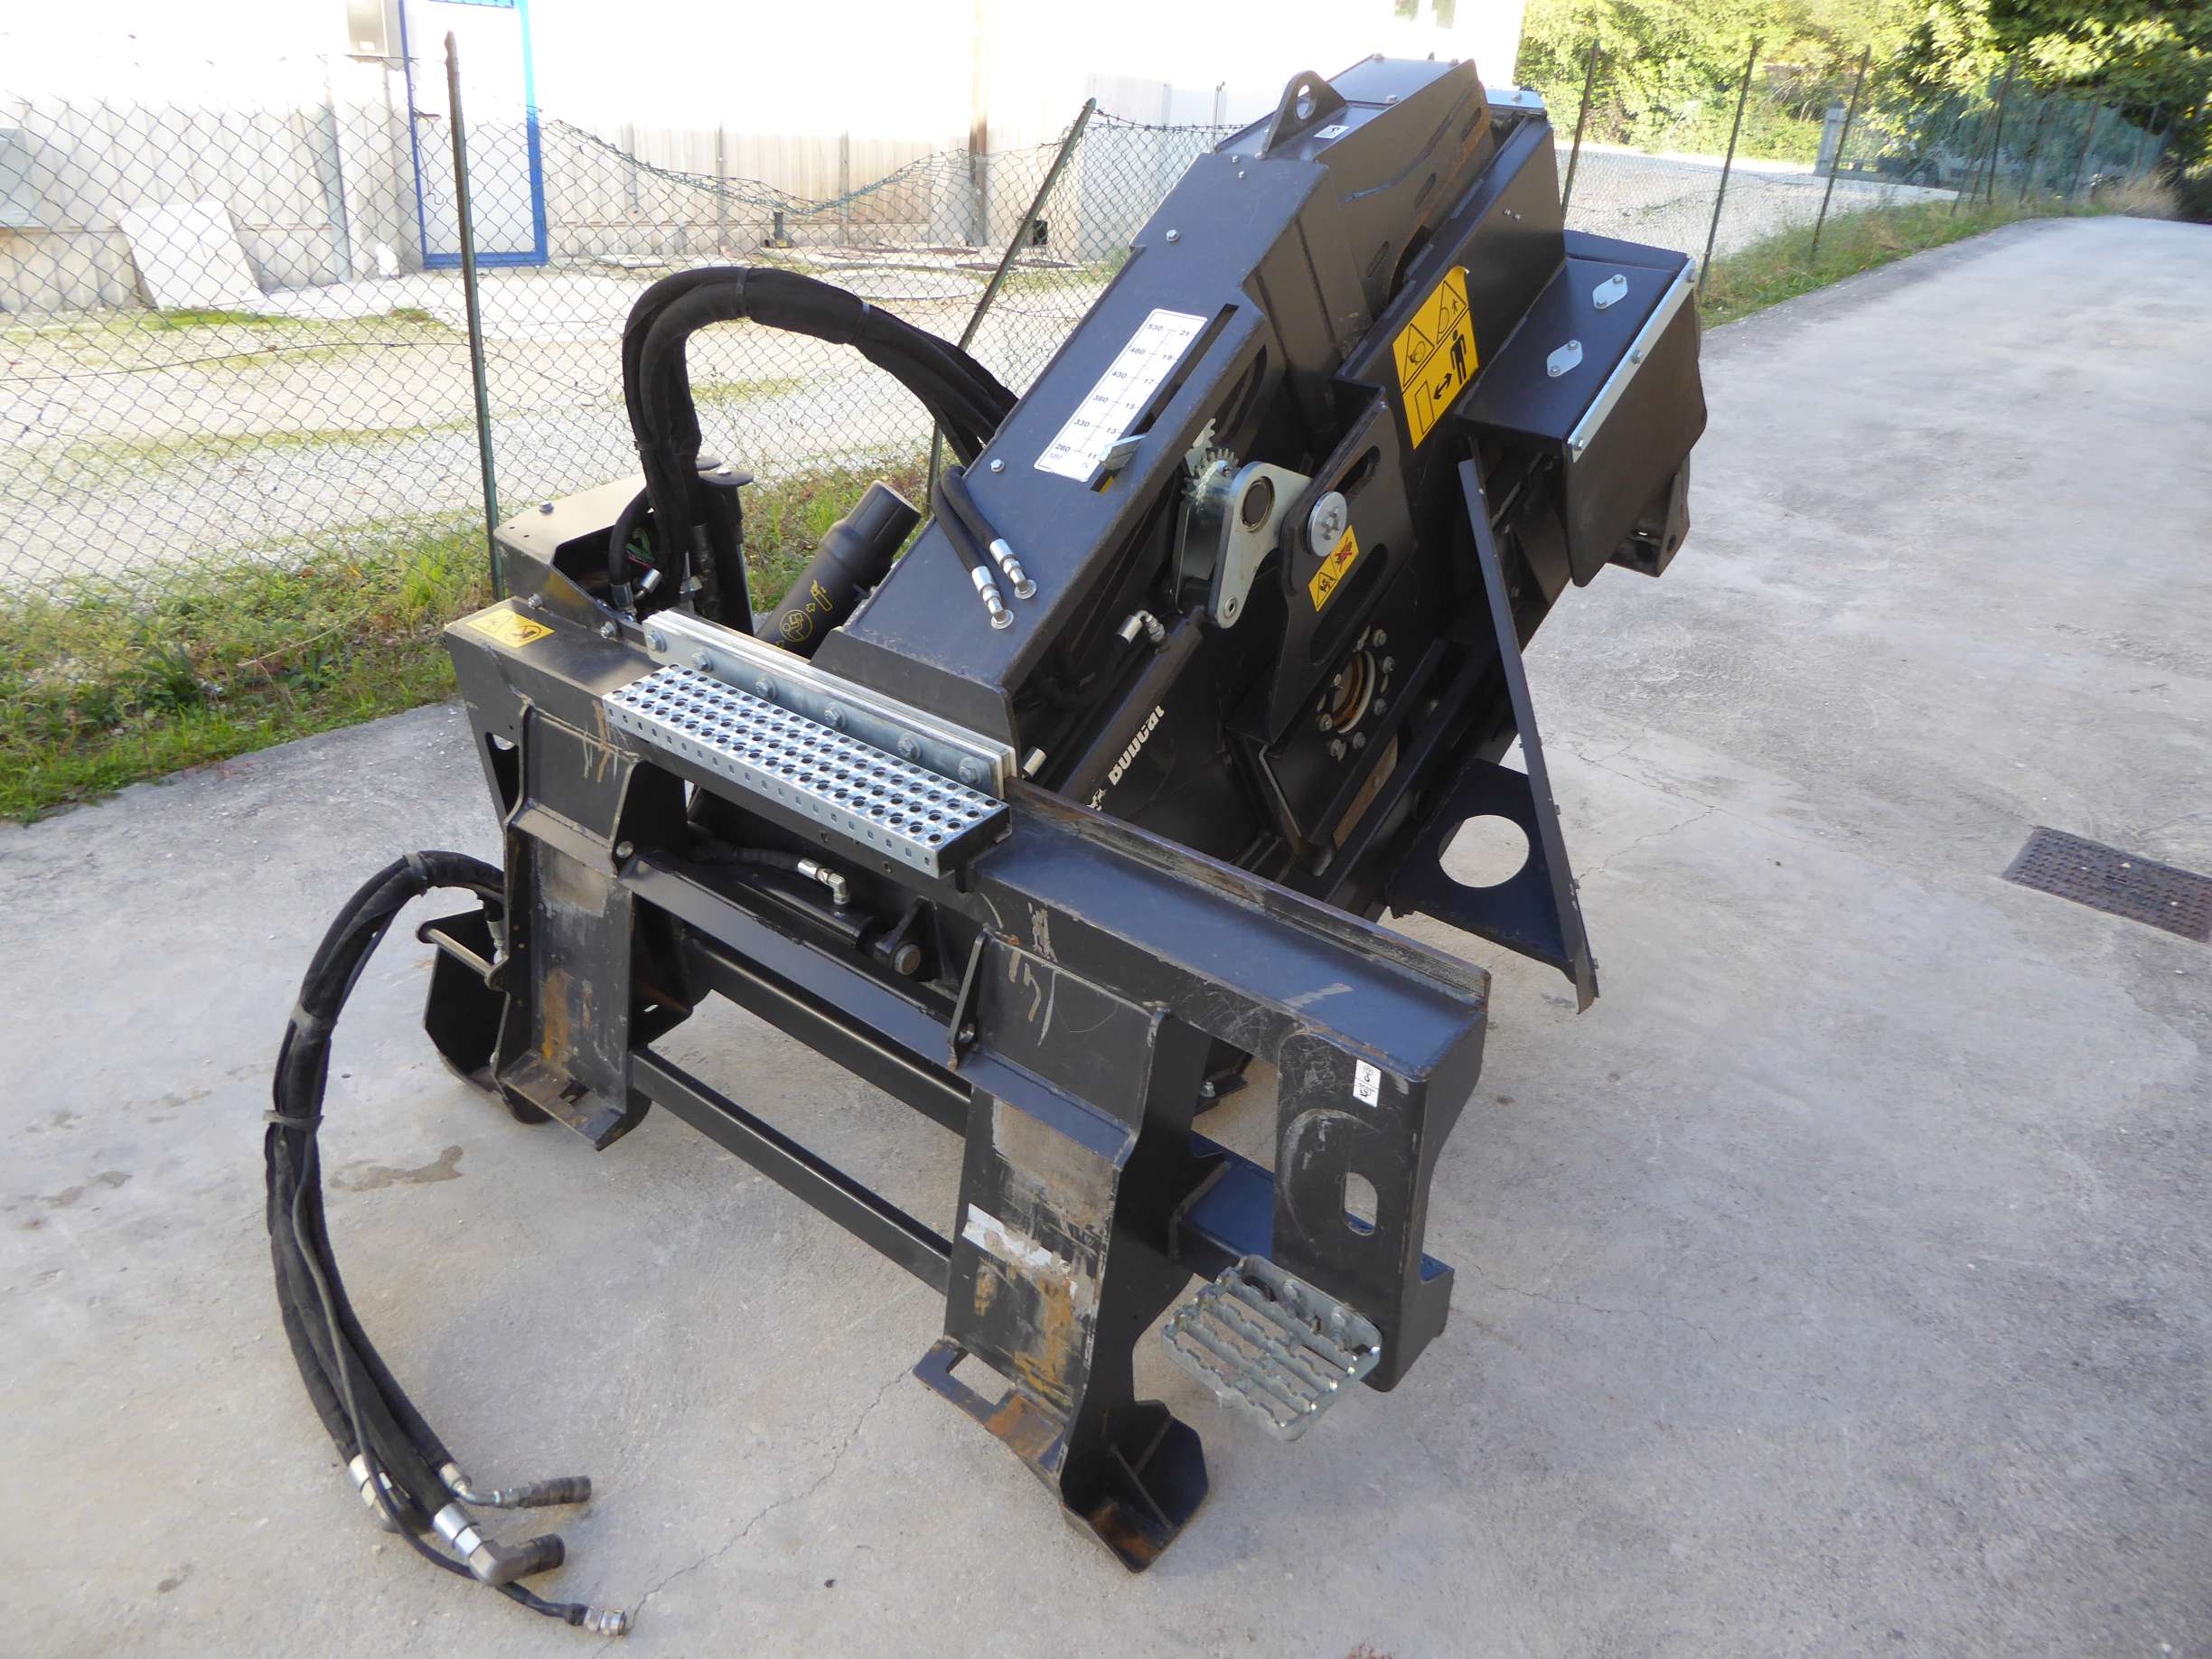 Scavacanali Bobcat WSSL 20 Wheel Saw in vendita - foto 4